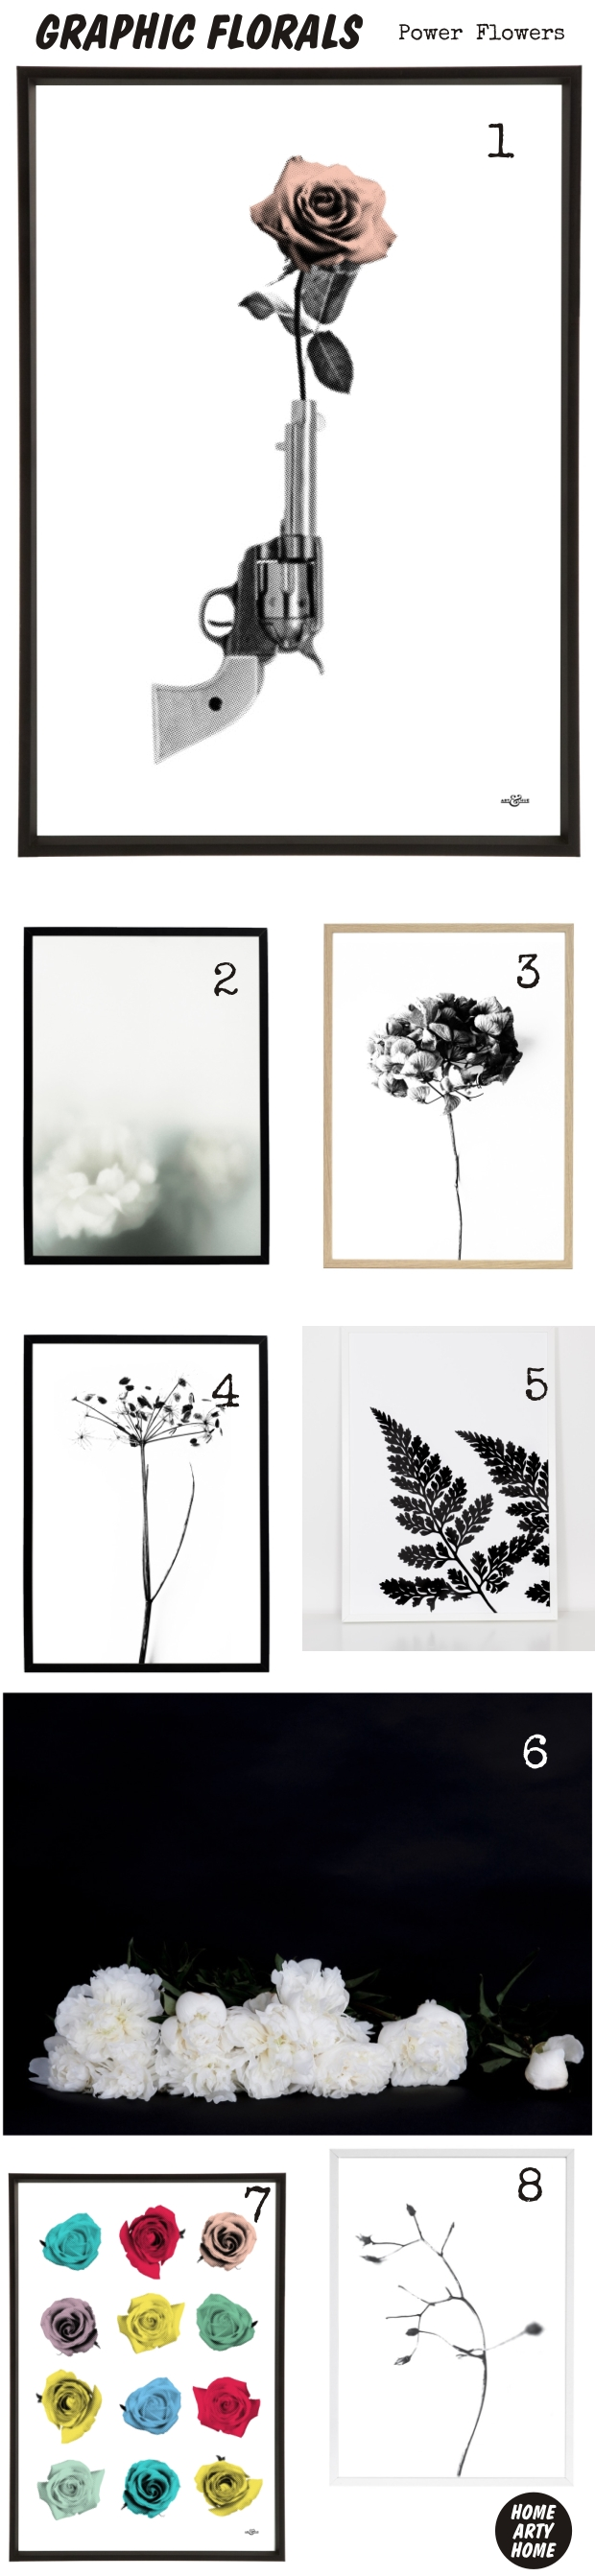 Graphic_Florals_homeartyhome2